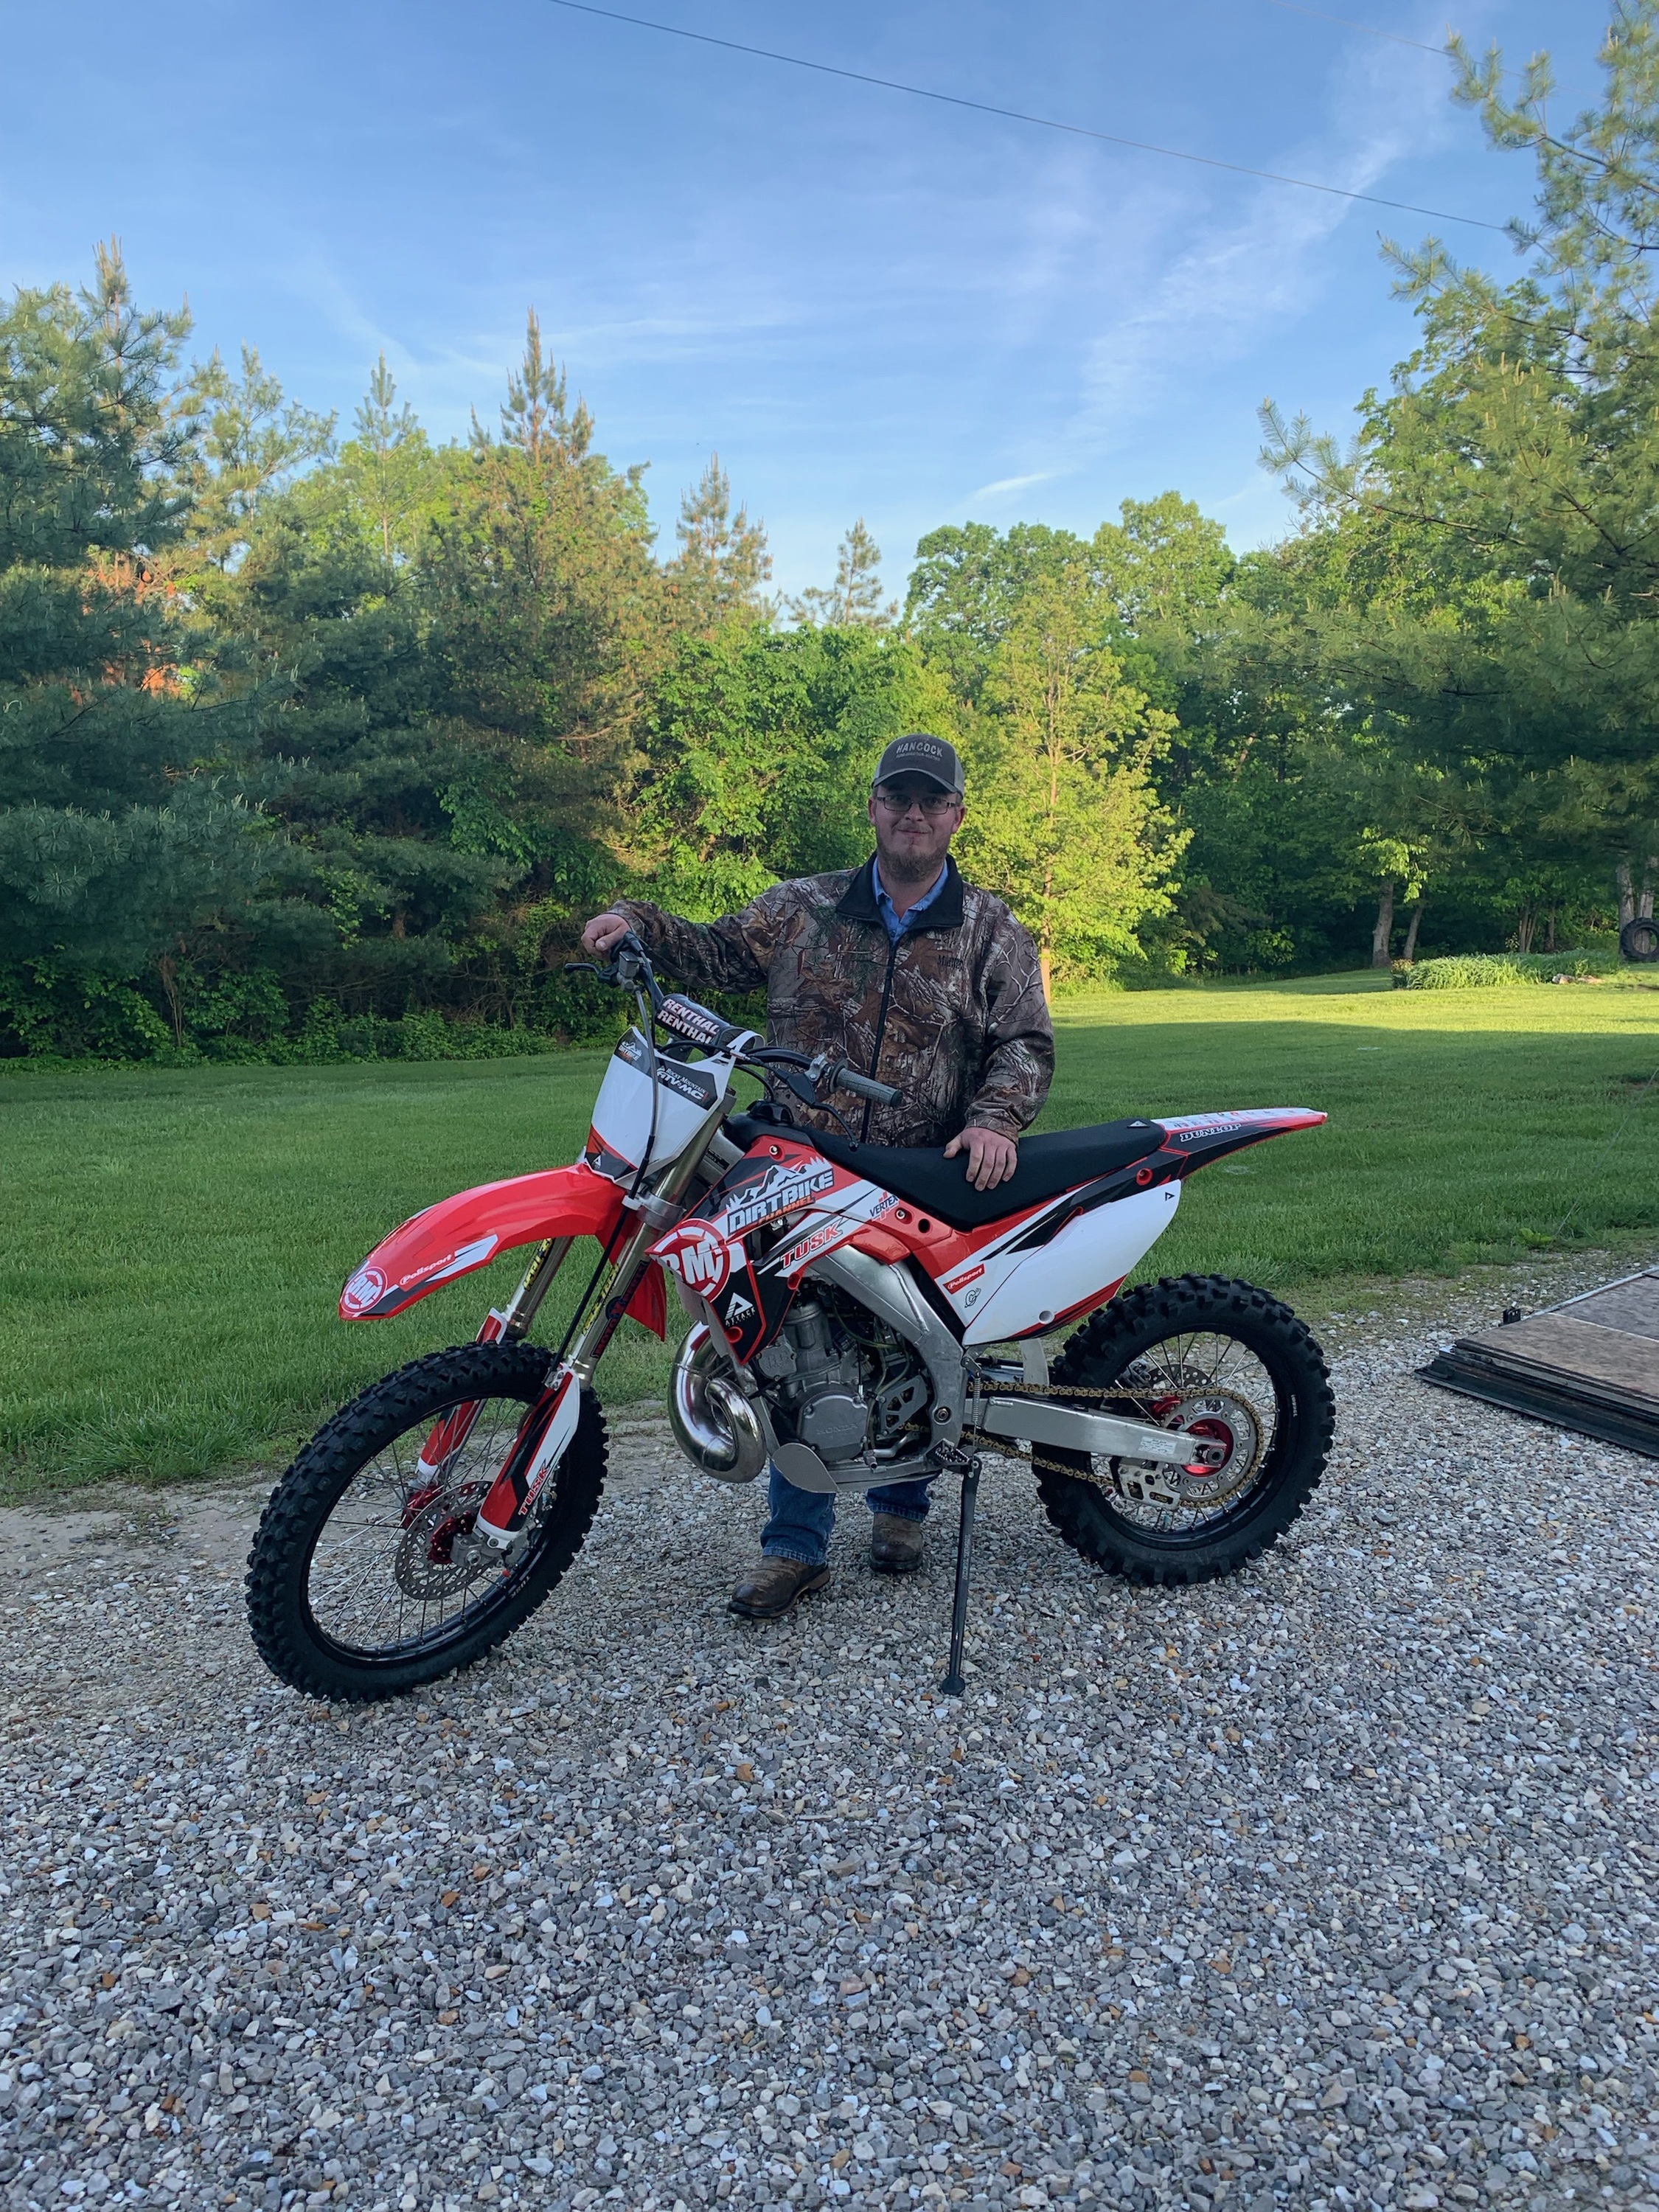 2003 Honda CR250R - Trenton Rice - Trenton was watching the live feed when his name was drawn as one of the dirt bike winners.  He is from Missouri, so we shipped the bike to him.  He's trilled with his new bike!